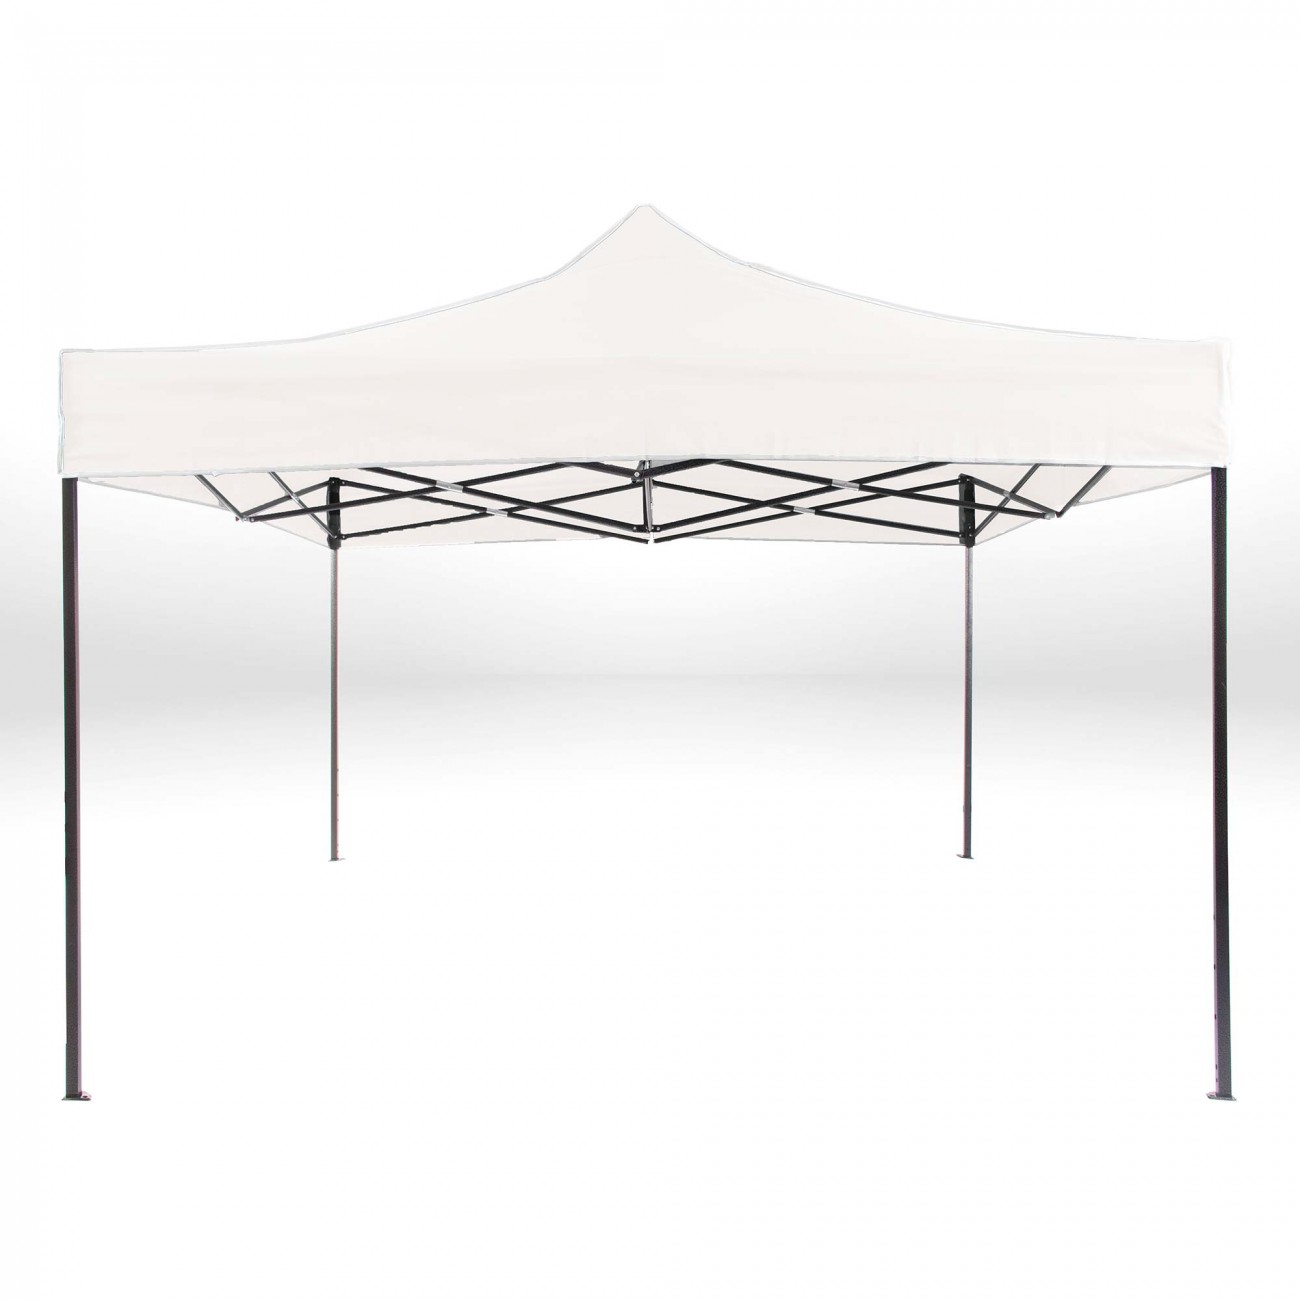 pavillon partyzelt gartenzelt zelt gazebo festzelt festival faltbar strattore ebay. Black Bedroom Furniture Sets. Home Design Ideas